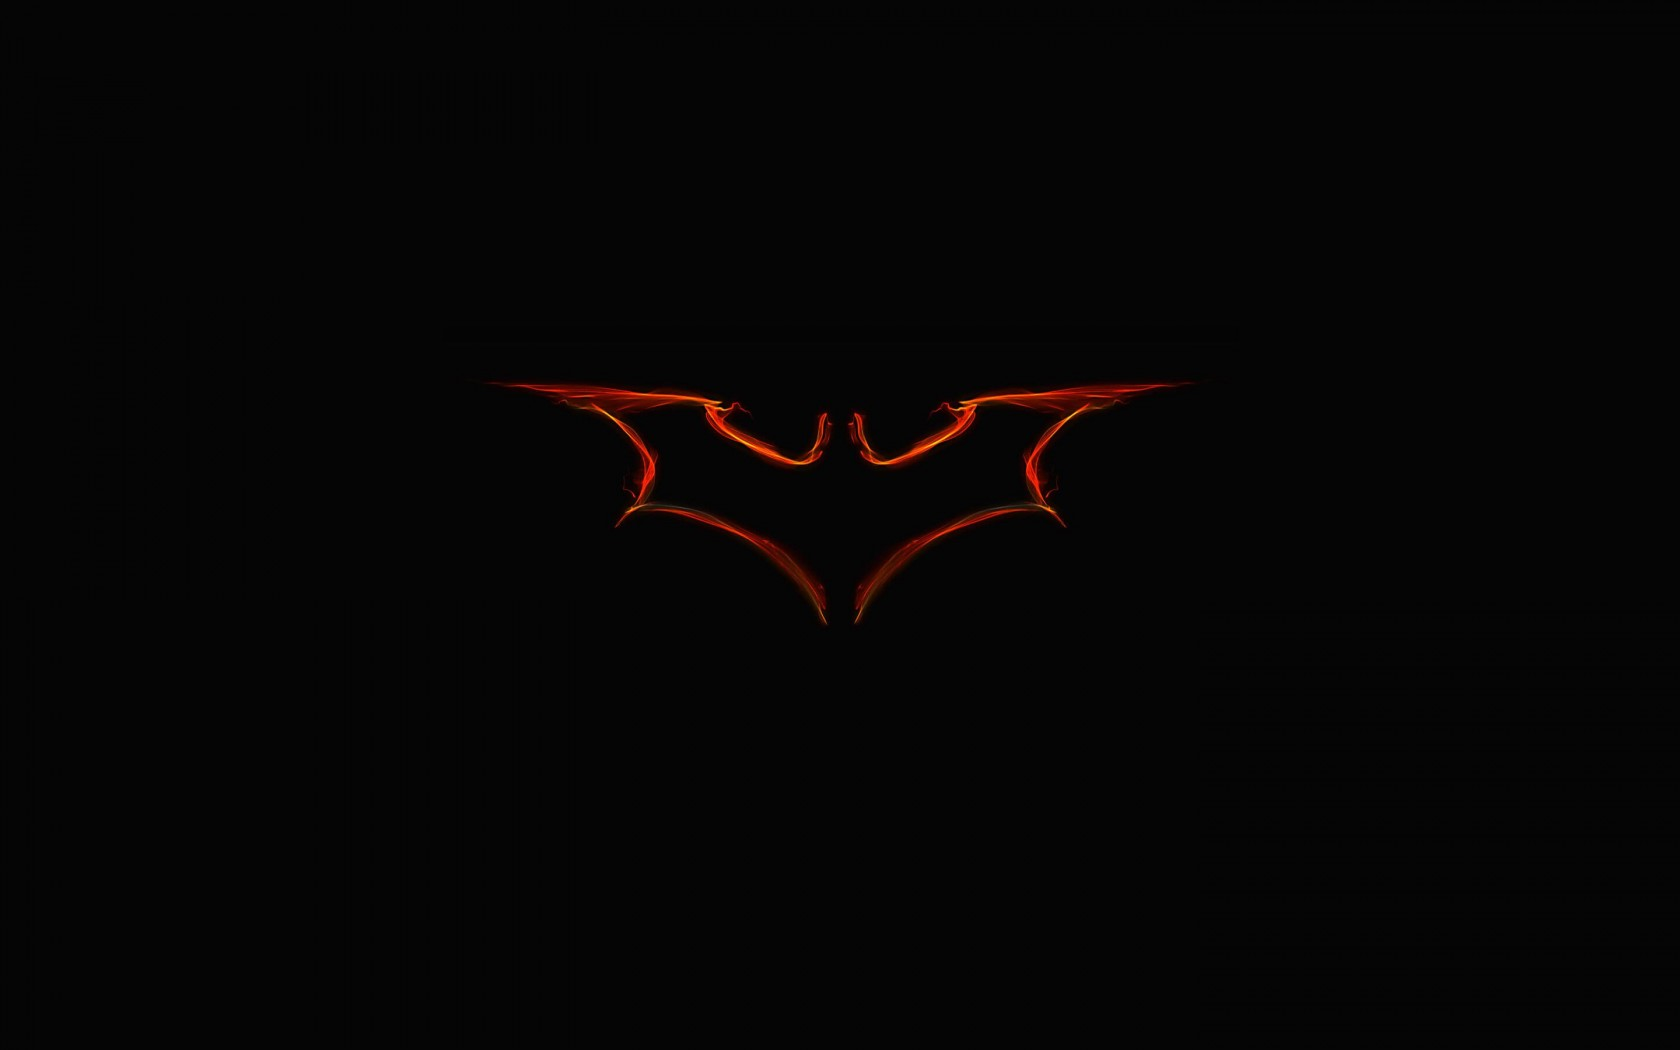 Batman Light Painting Logo Wallpaper for Desktop 1680x1050